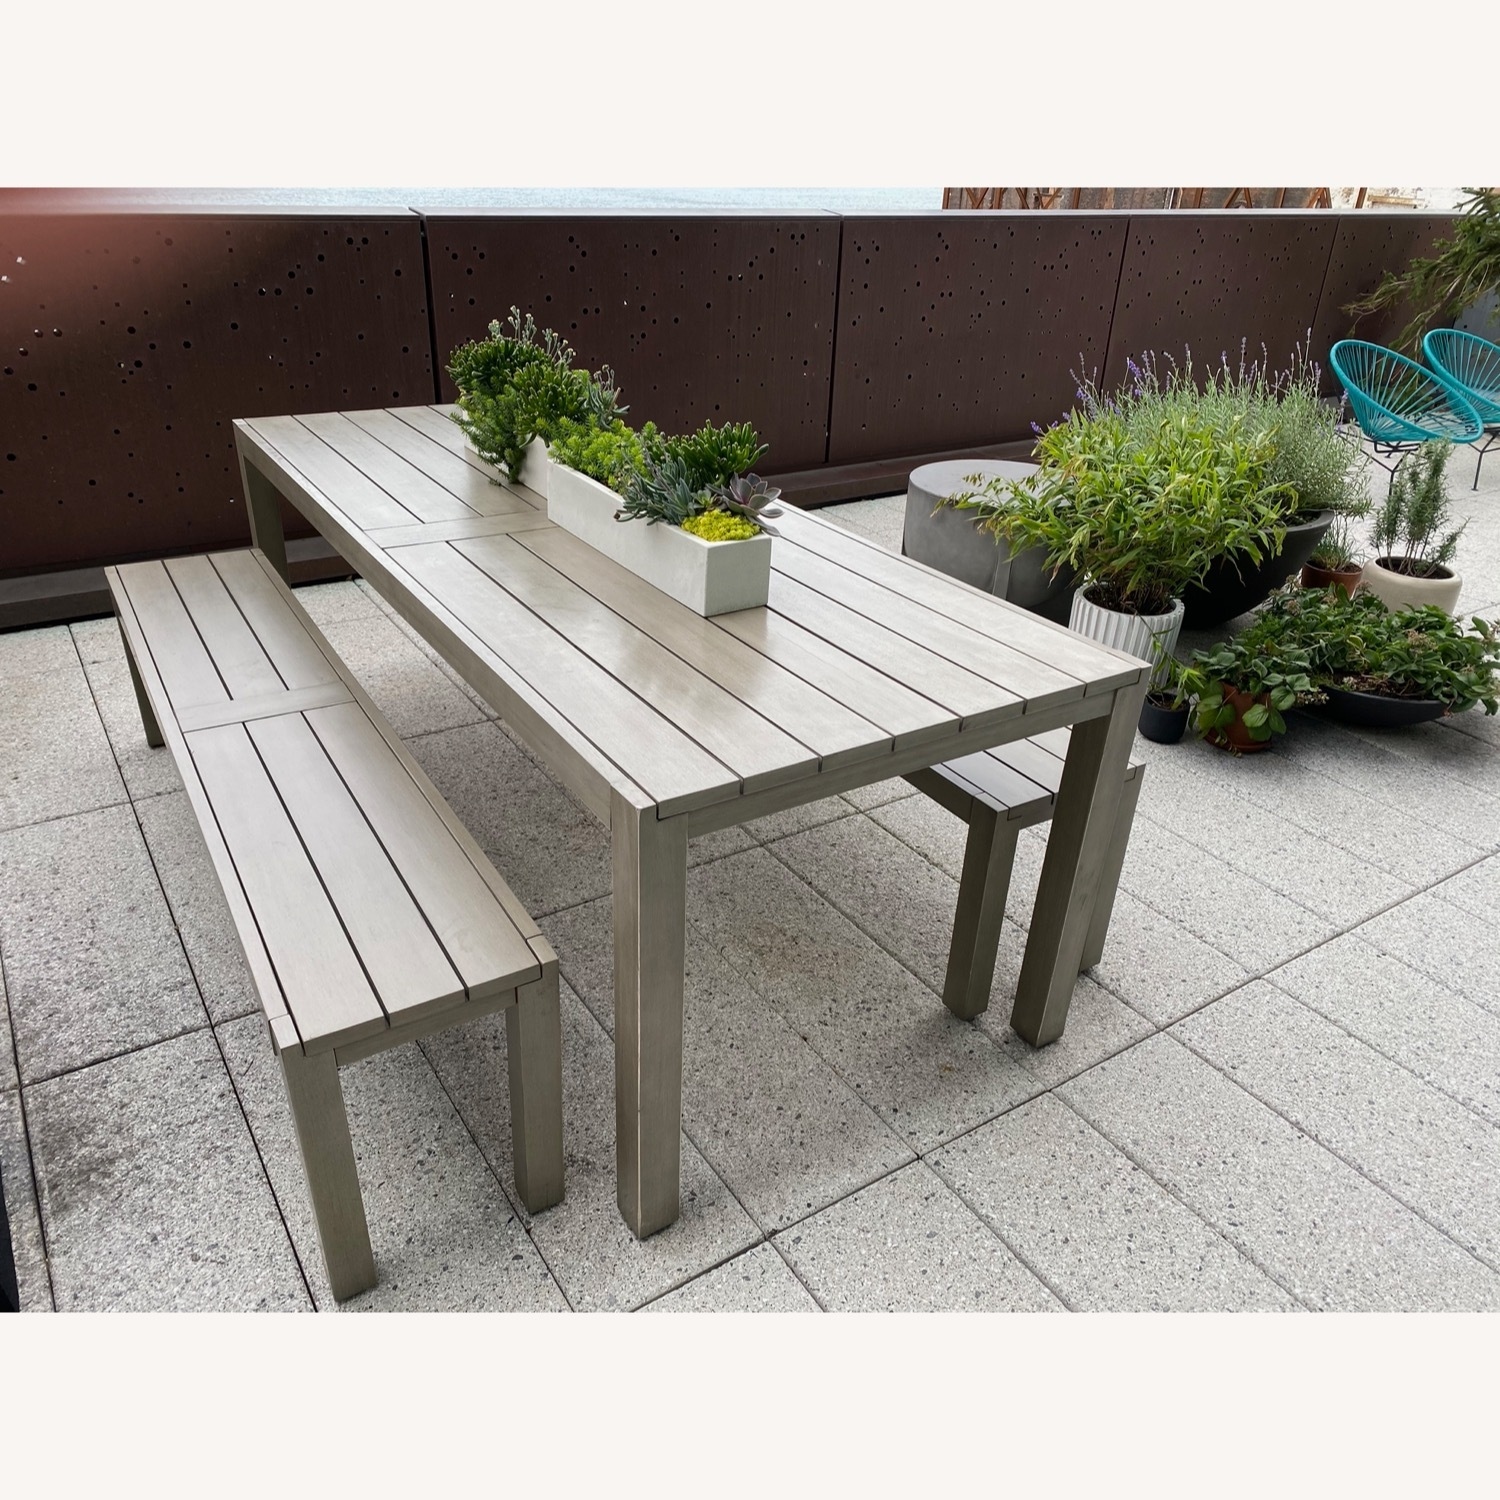 CB2 Matera Outdoor Dining Table w/ benches - image-1